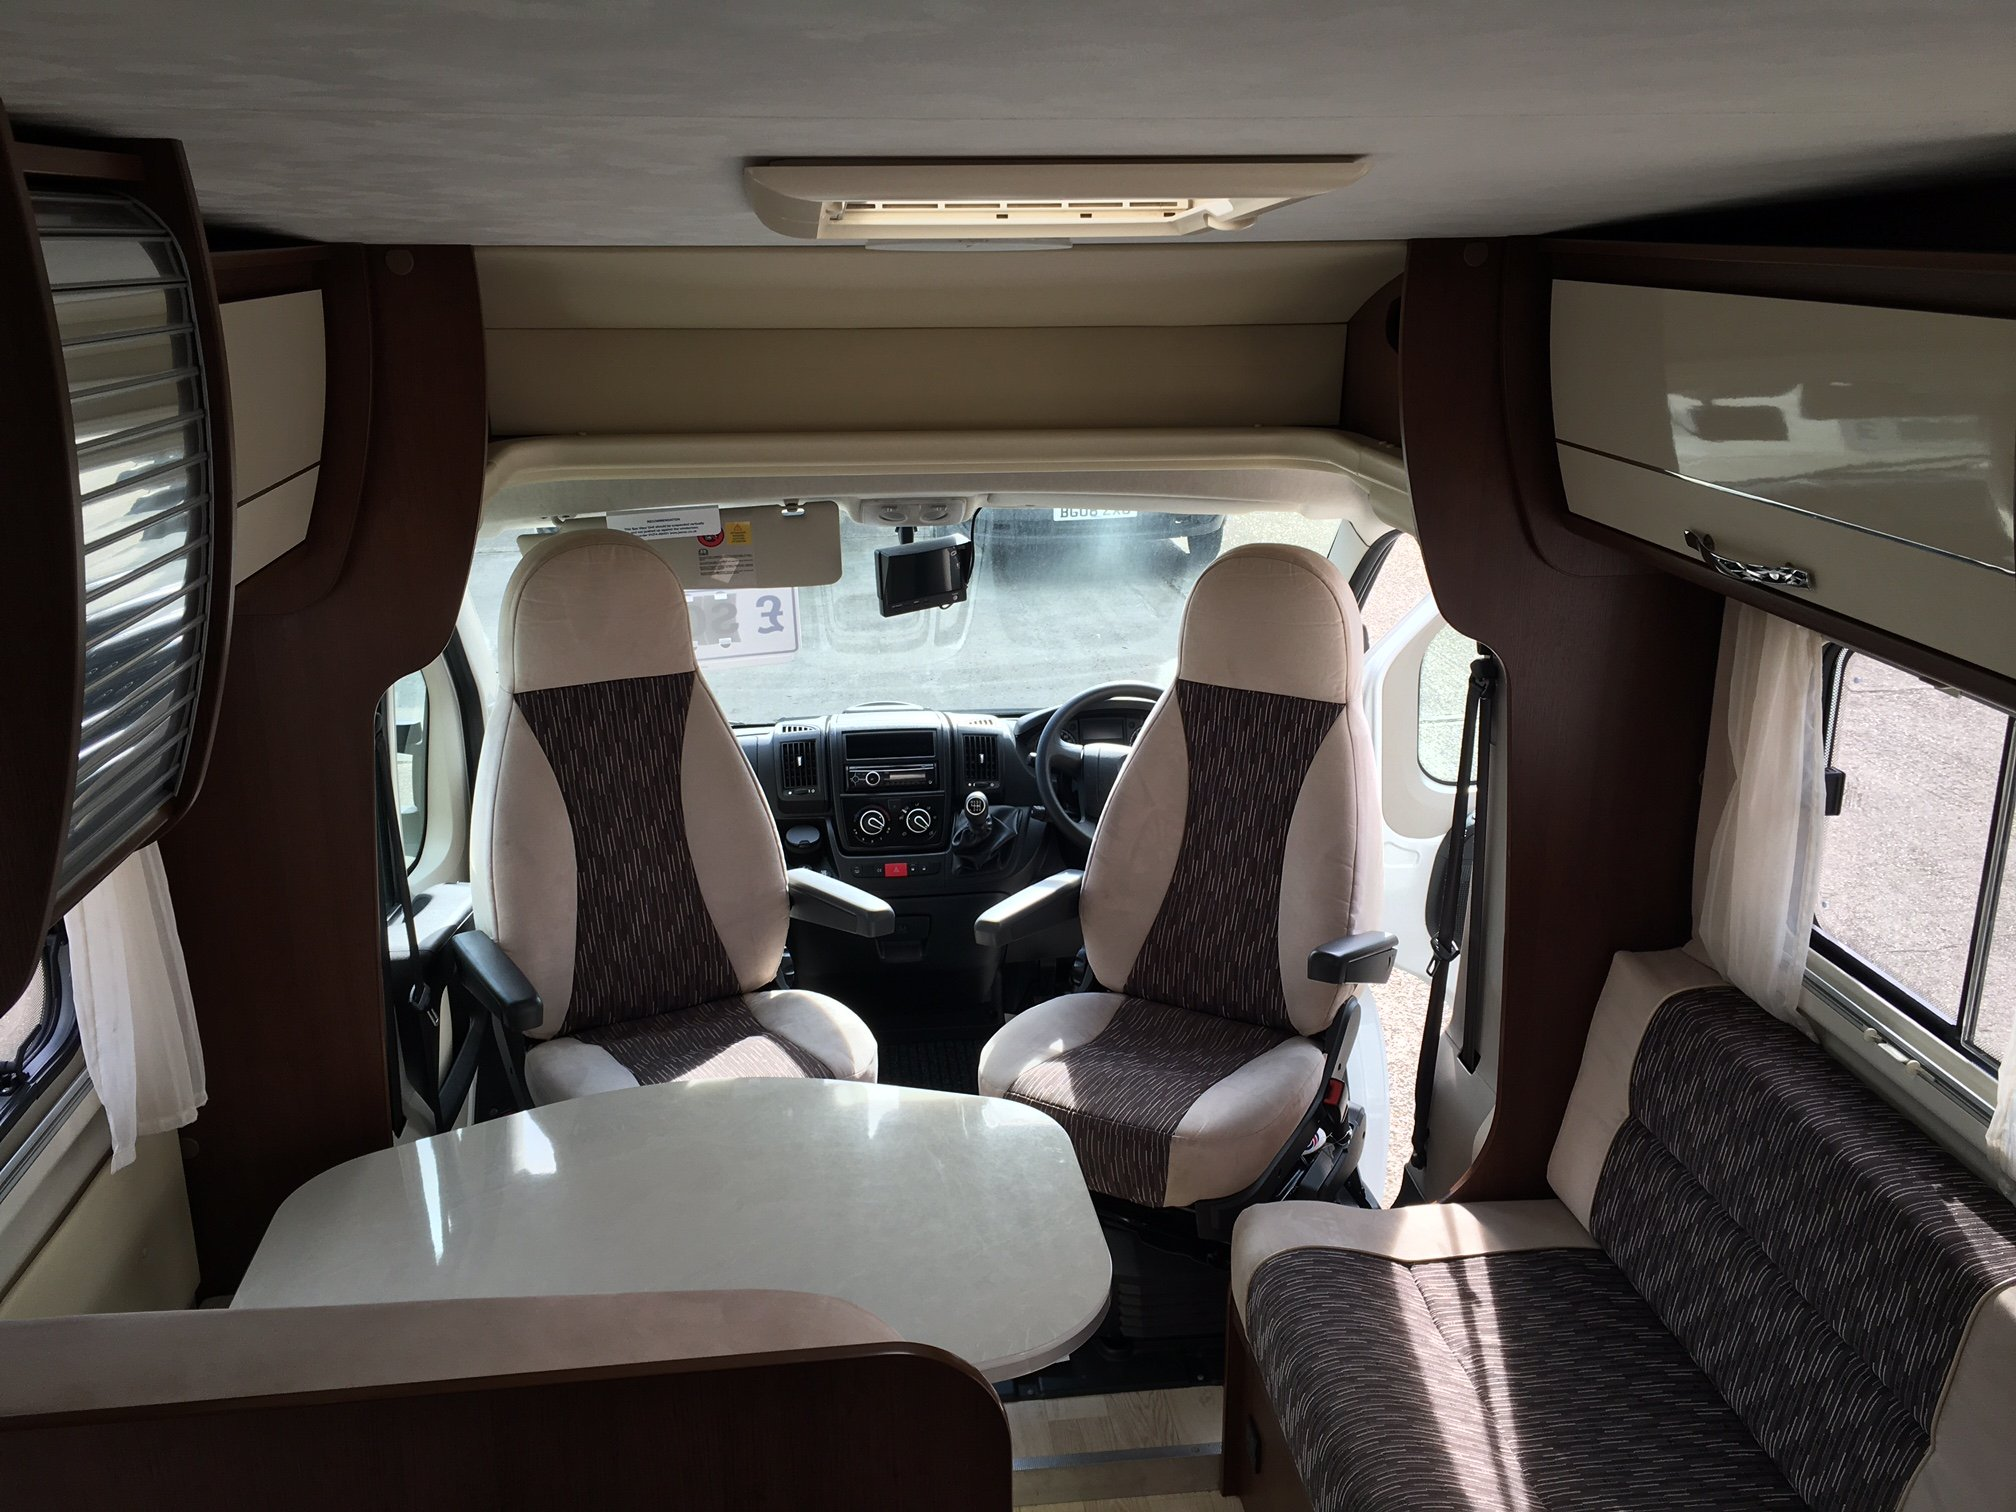 roller team, auto roller 694 second hand motorhome for sale, 2013, luxury